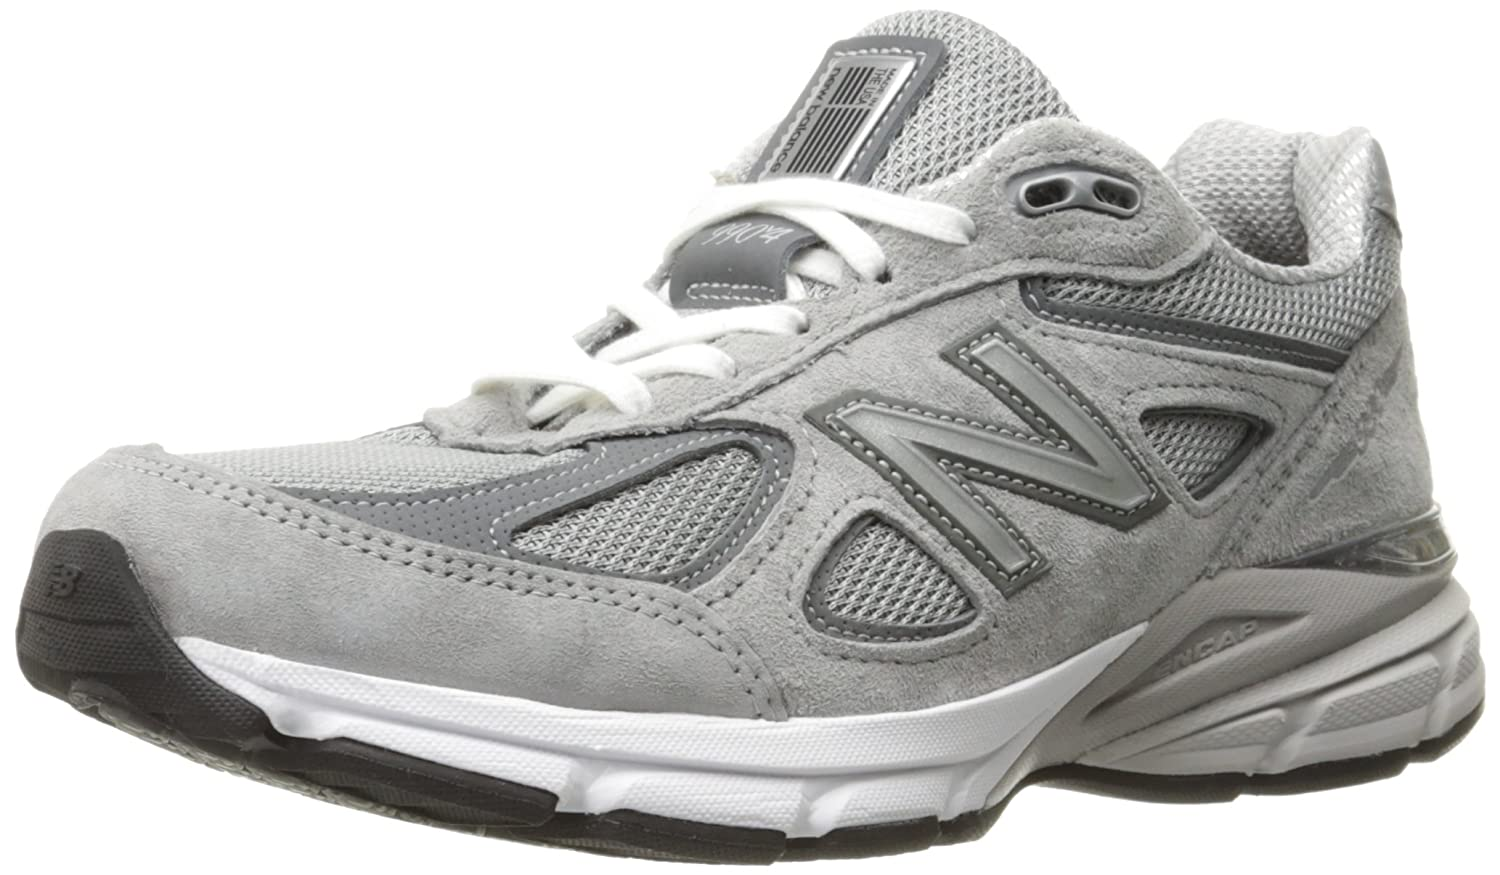 New Balance Women's w990v4 Running Shoe B0163GIPUG 5 2A US|Grey/Castlerock